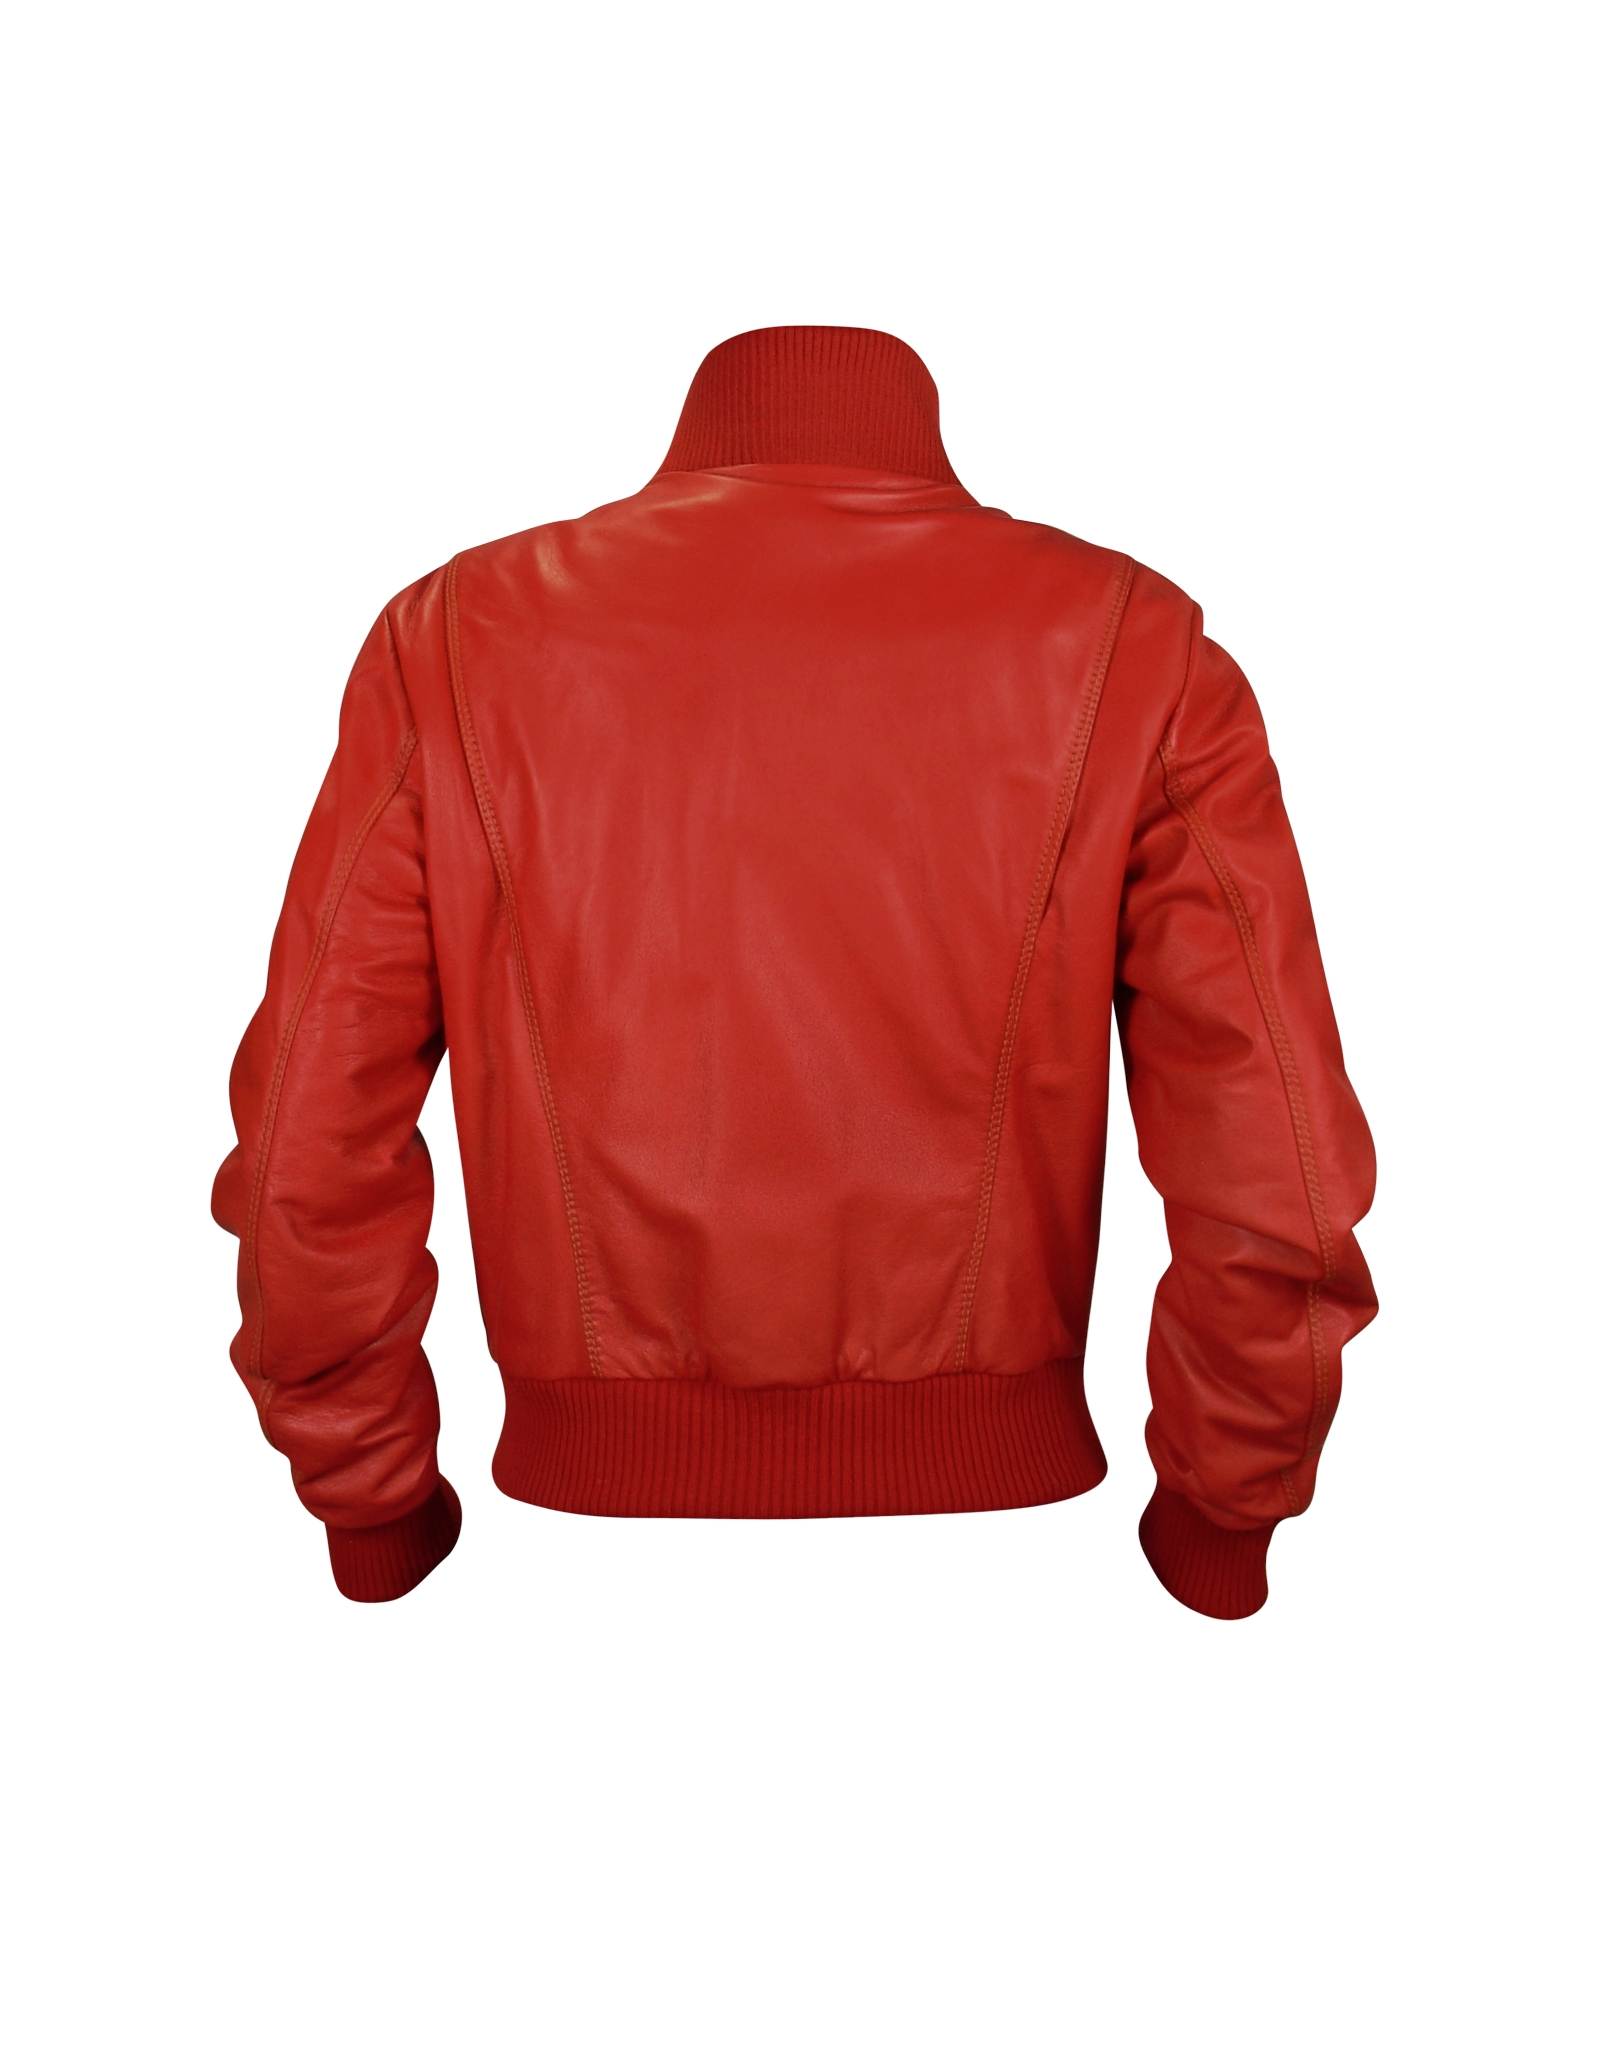 Forzieri Women's Red Leather Bomber Jacket in Red | Lyst